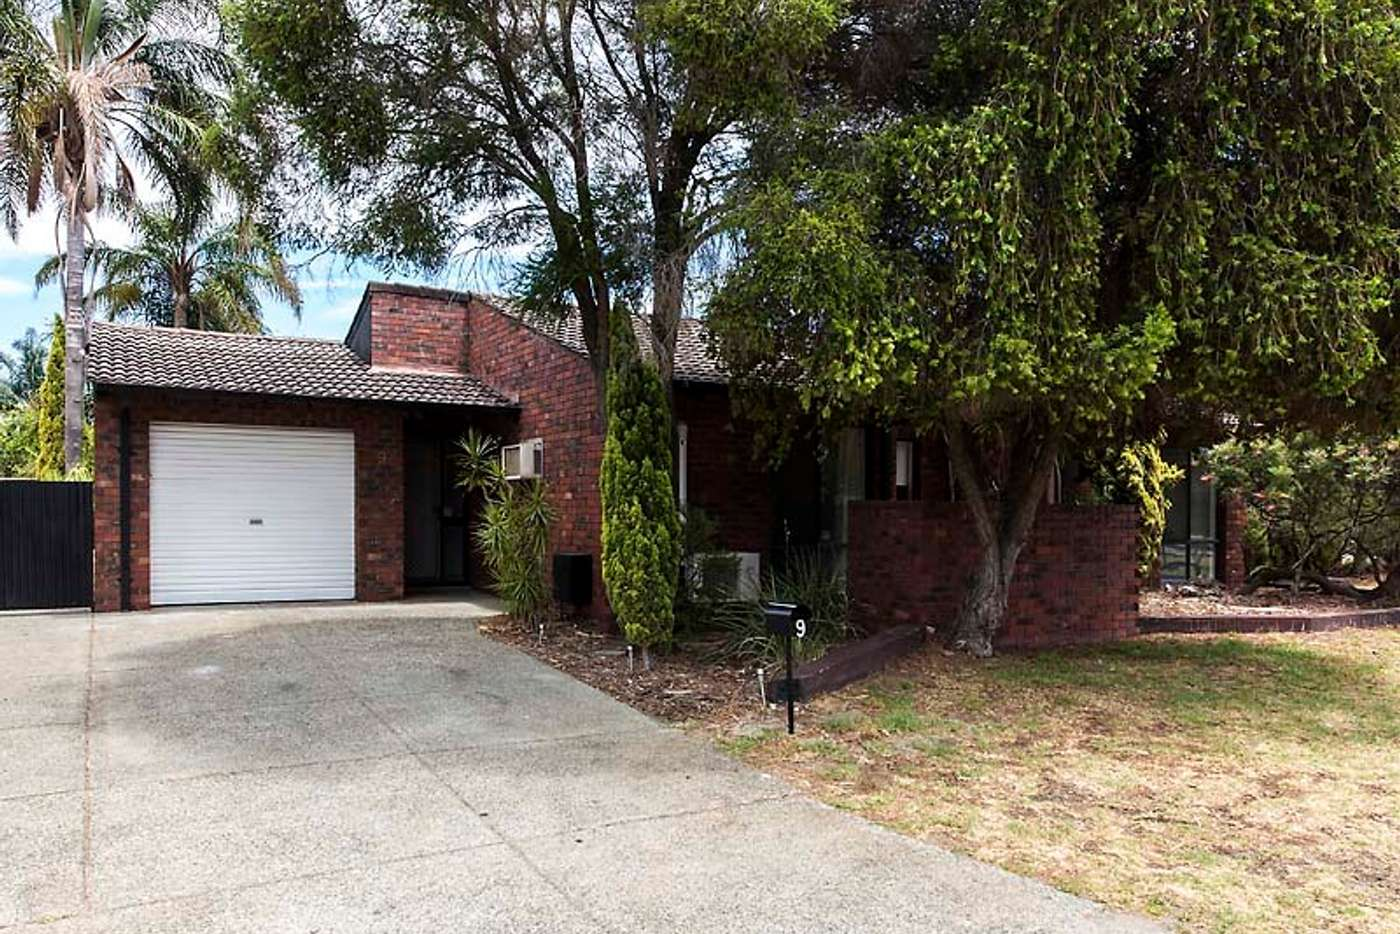 Main view of Homely house listing, 9 May Road, Eden Hill WA 6054